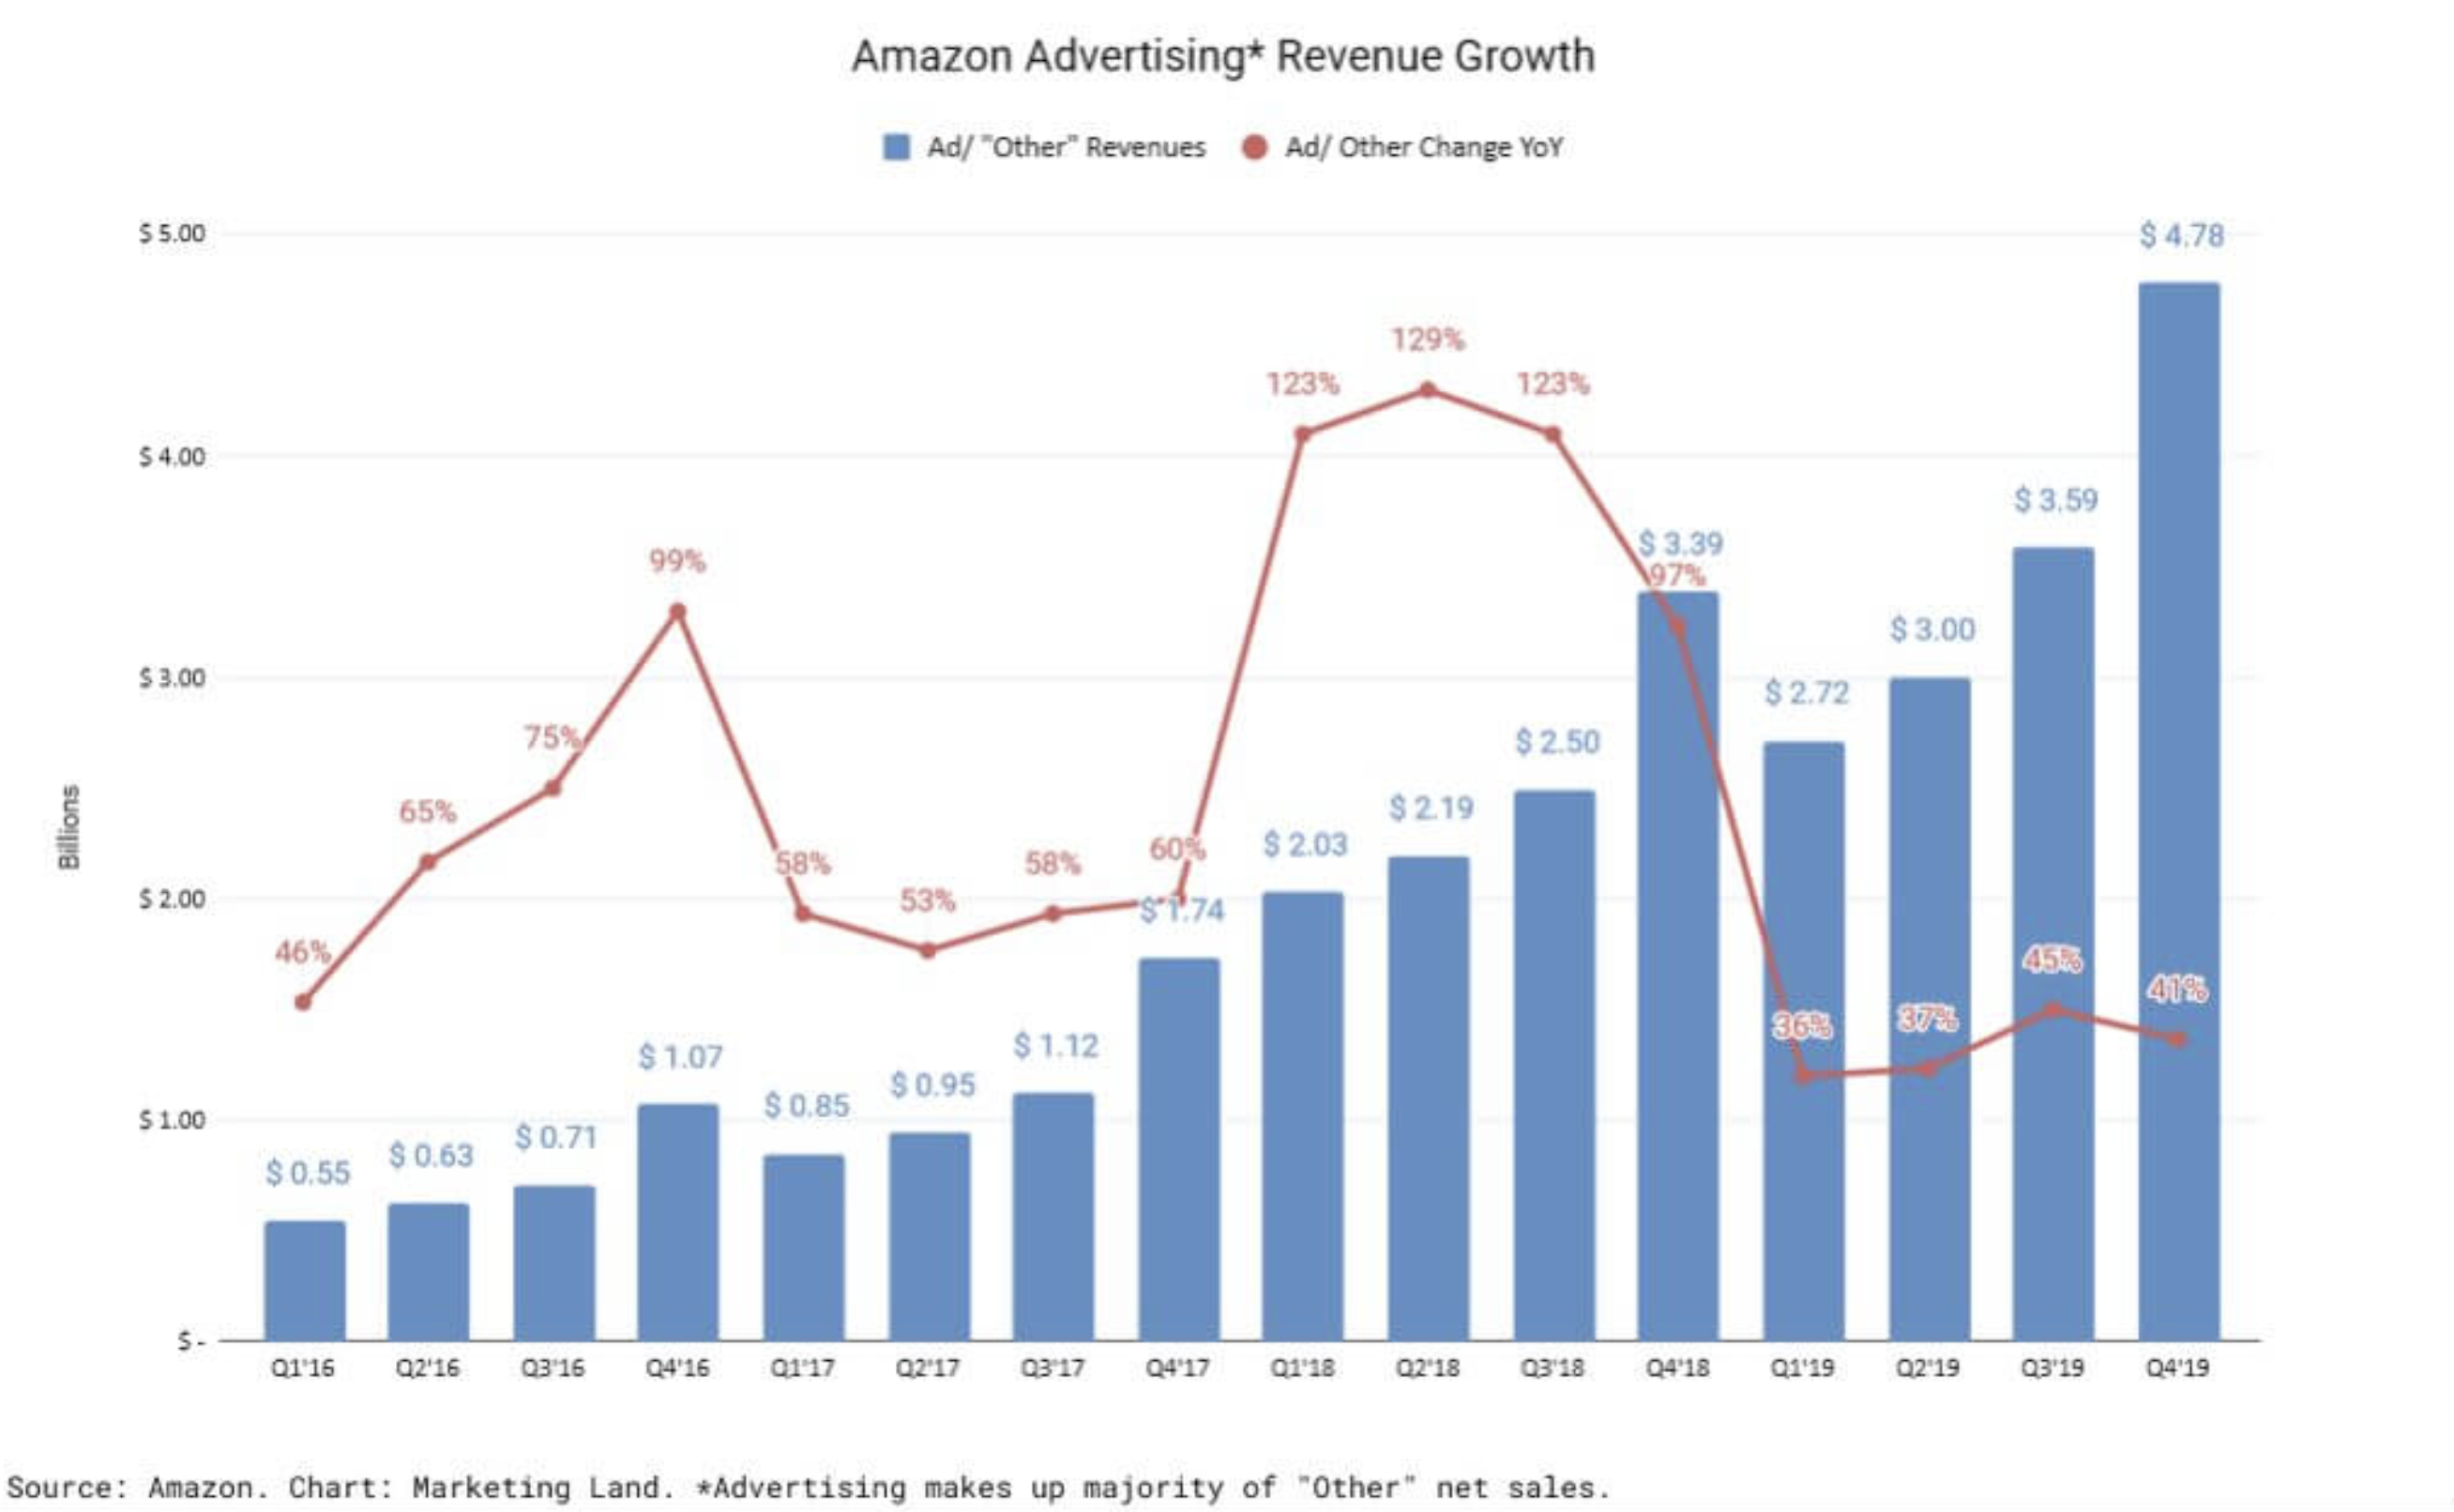 Amazon advertisement revenue growth